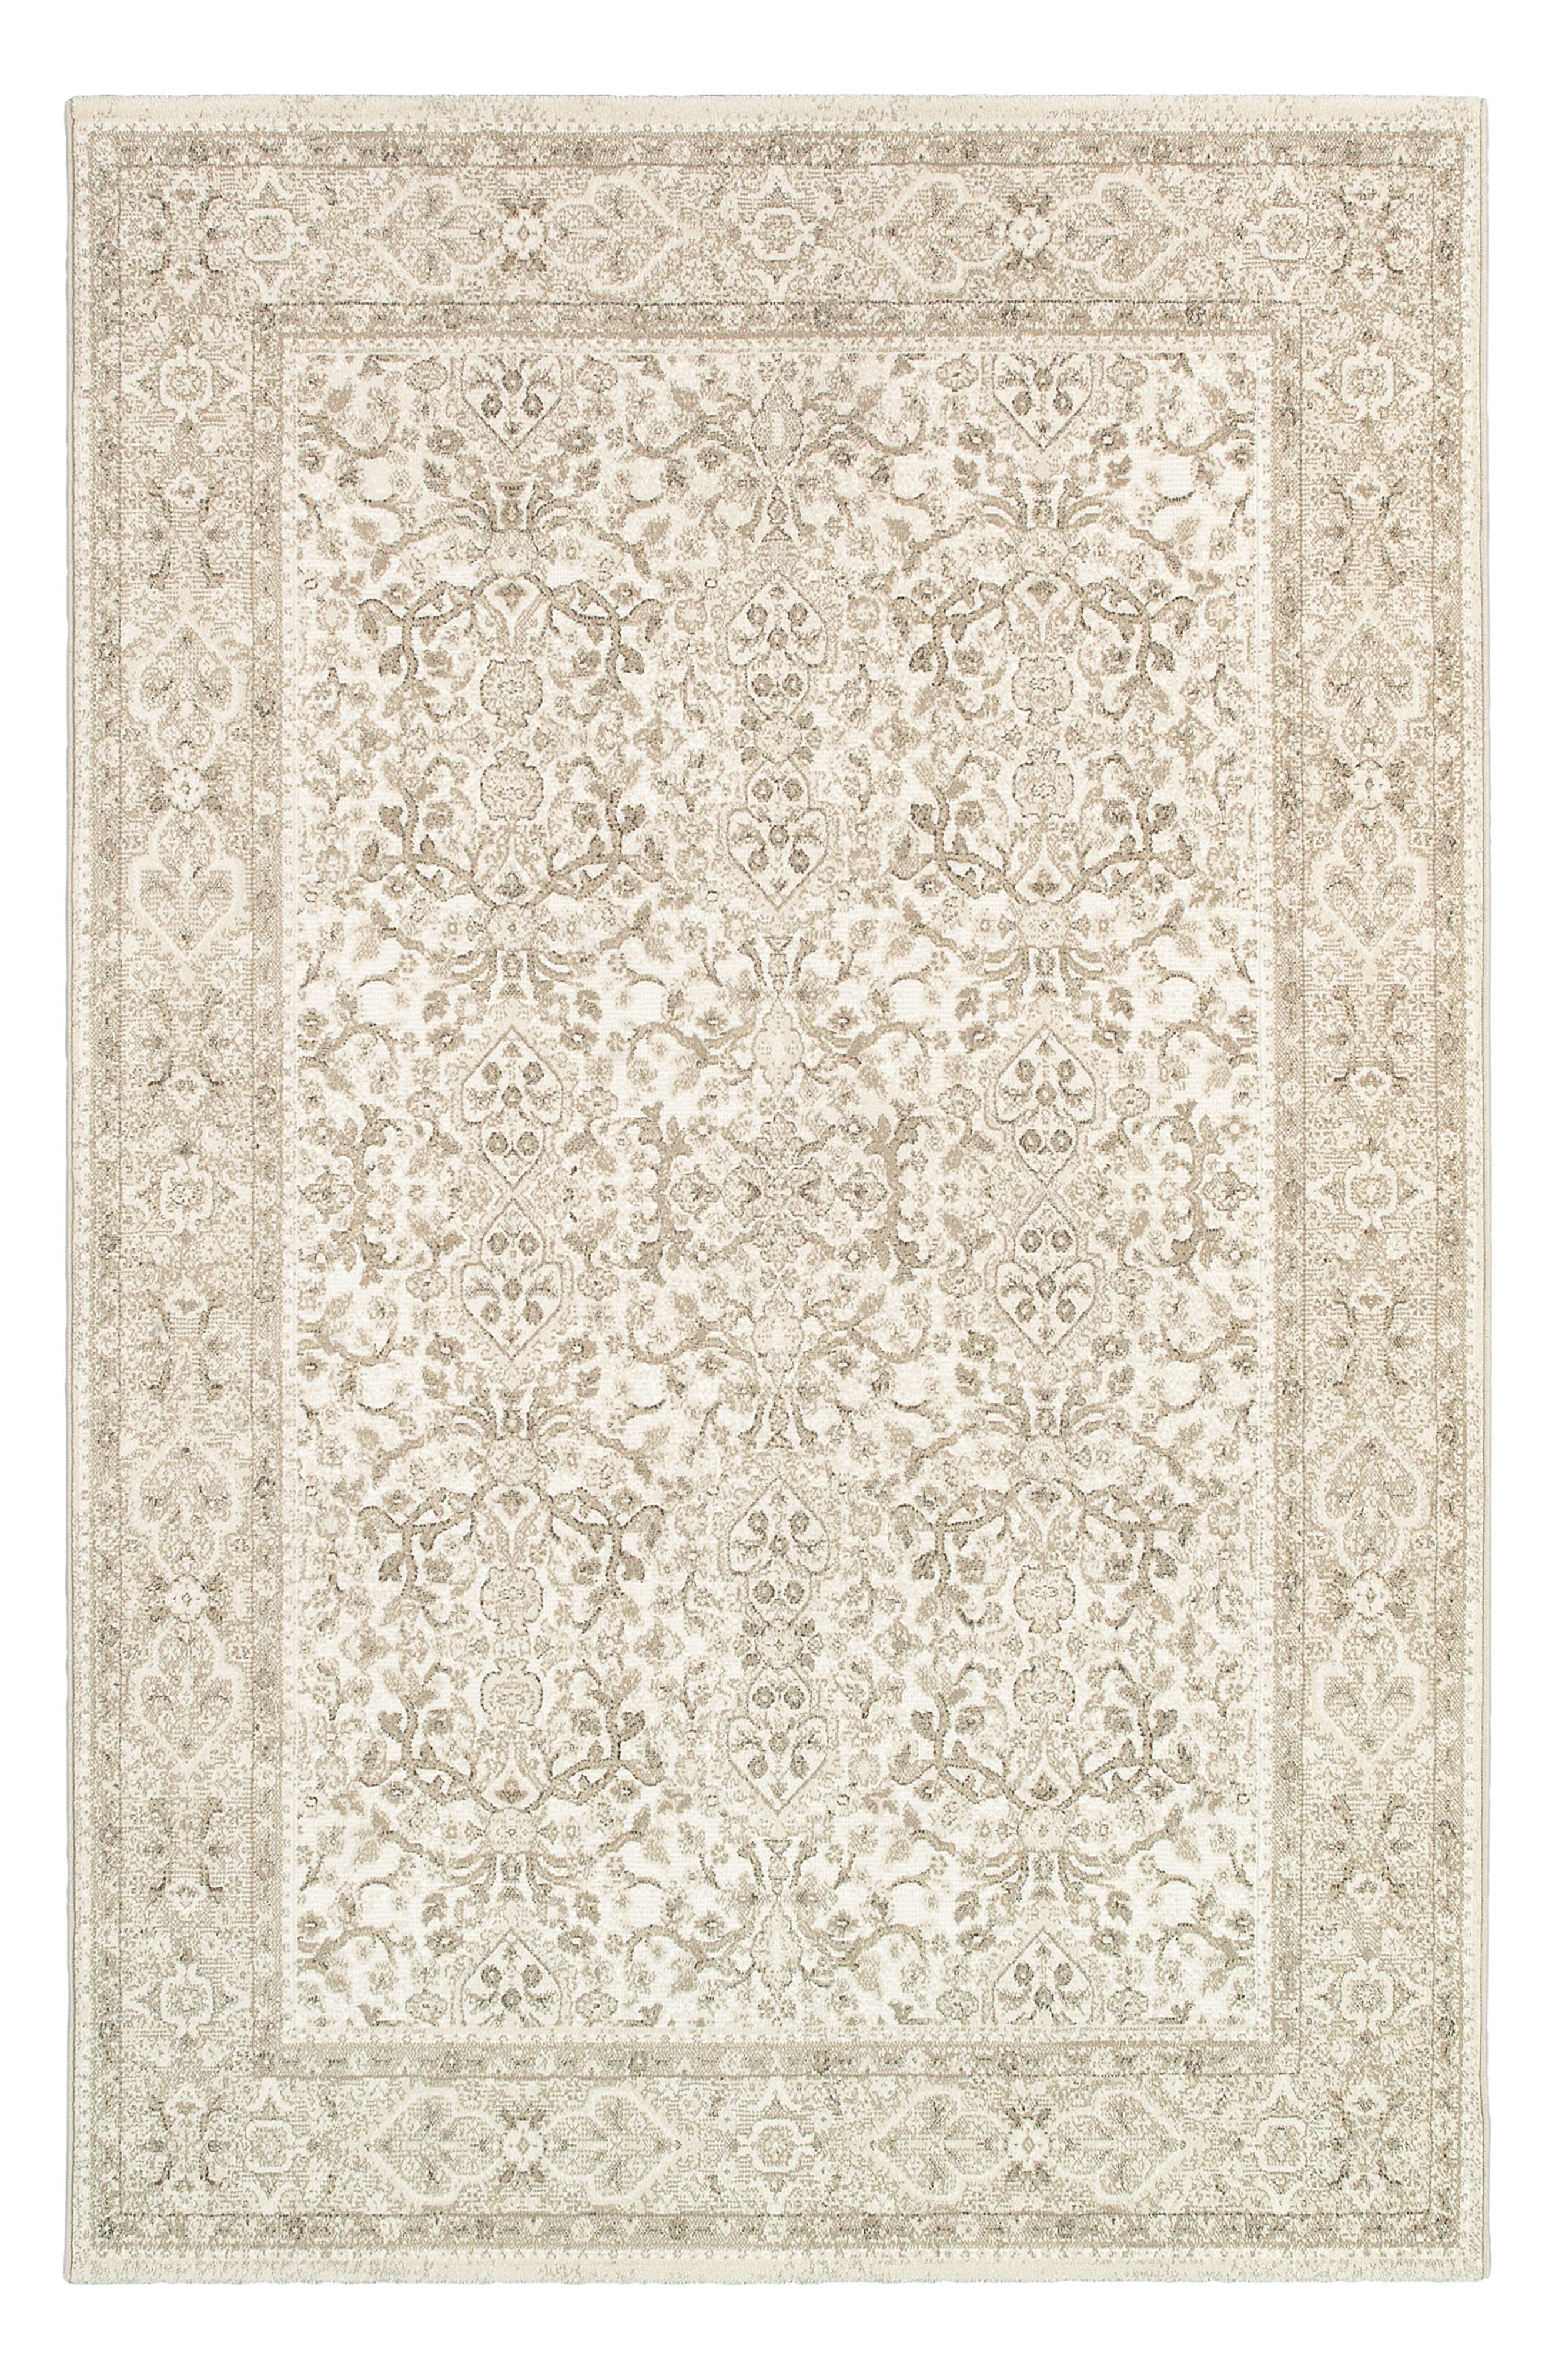 A muted, intricate floral motif adds timeless appeal to a versatile rug power-loomed in fade-resistant polypropylene, making it great for high-traffic areas both inside and outside. Style Name: Couristan St. Tropez Indoor/outdoor Rug. Style Number: 5366890. Available in stores.